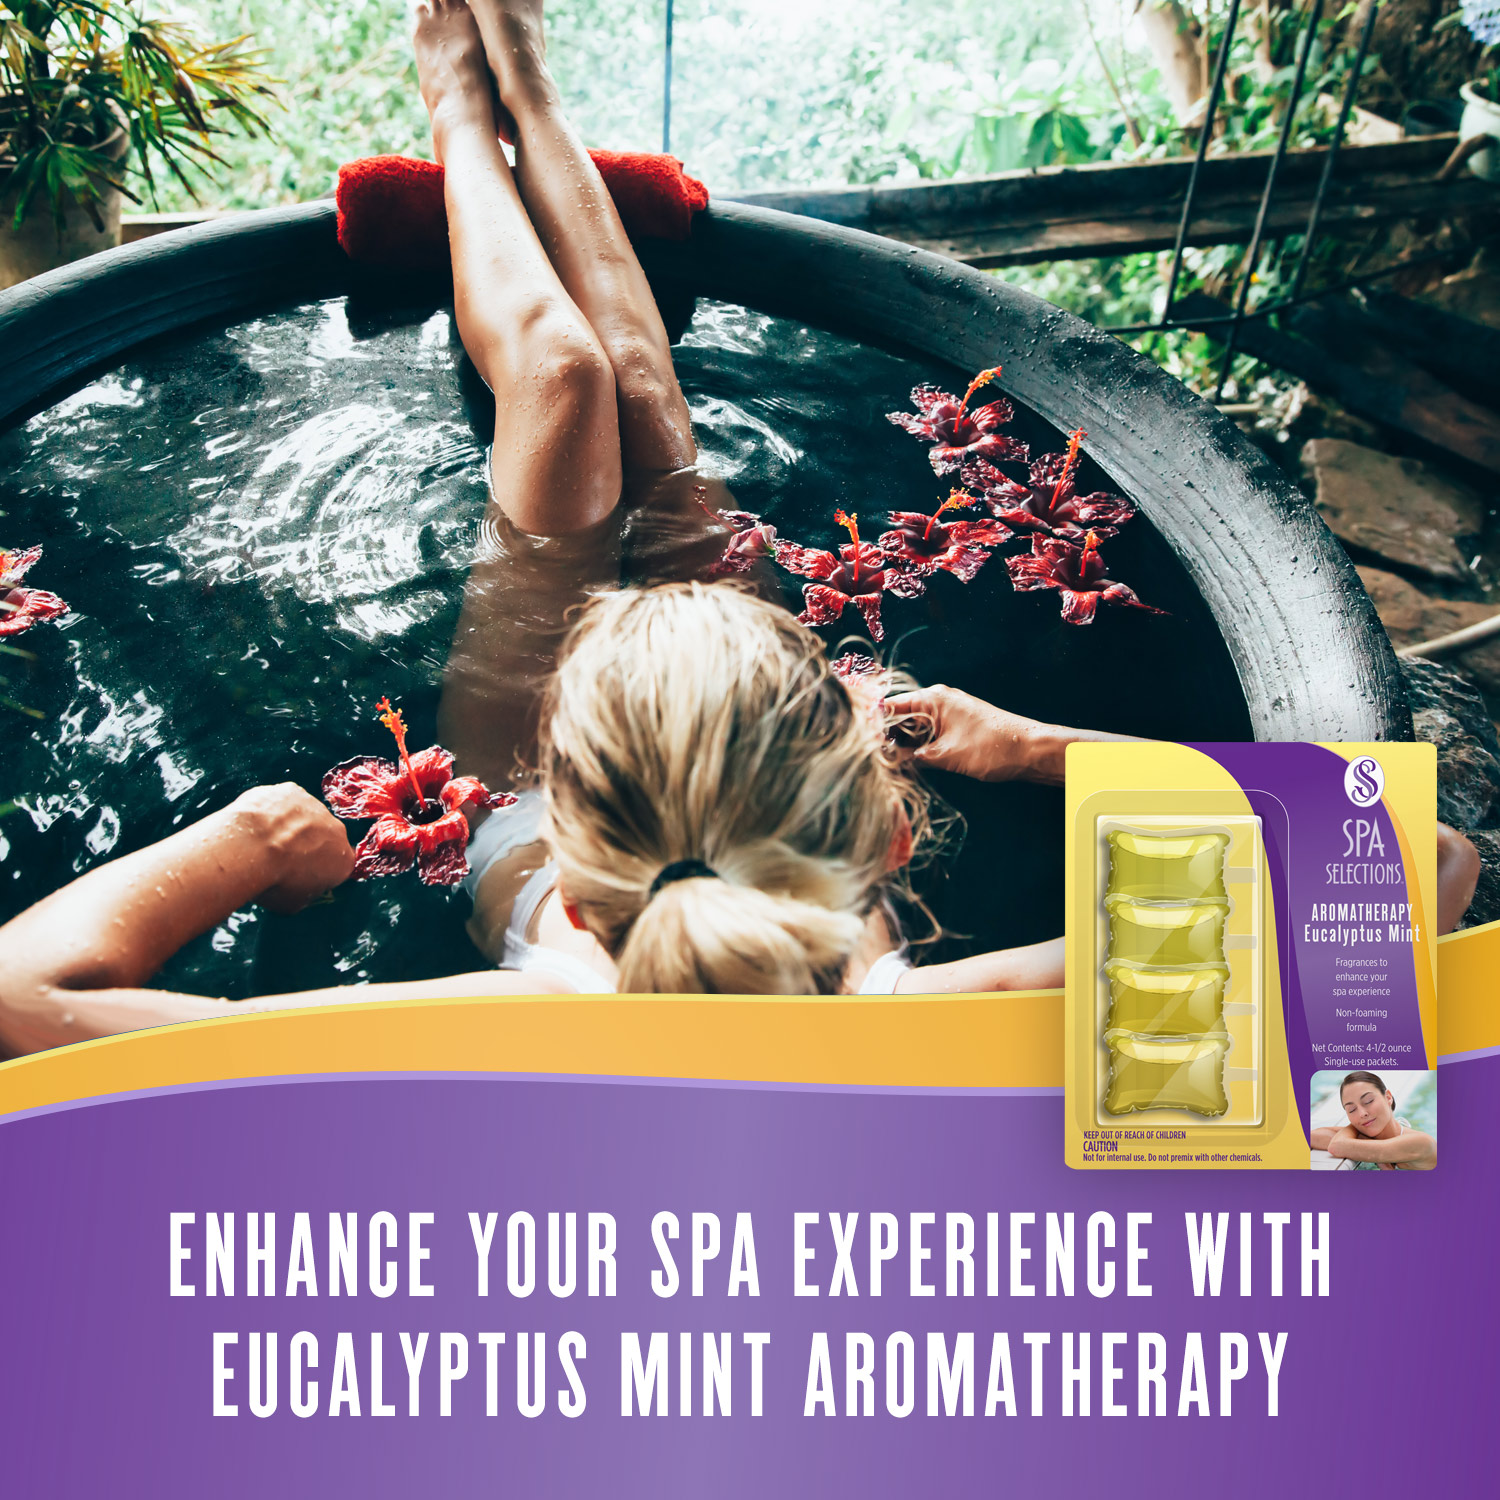 Woman enjoying hot tub overlooking a eucalyptus forest. Enhance your spa experience with eucalyptus mint aromatherapy from Spa Selections.